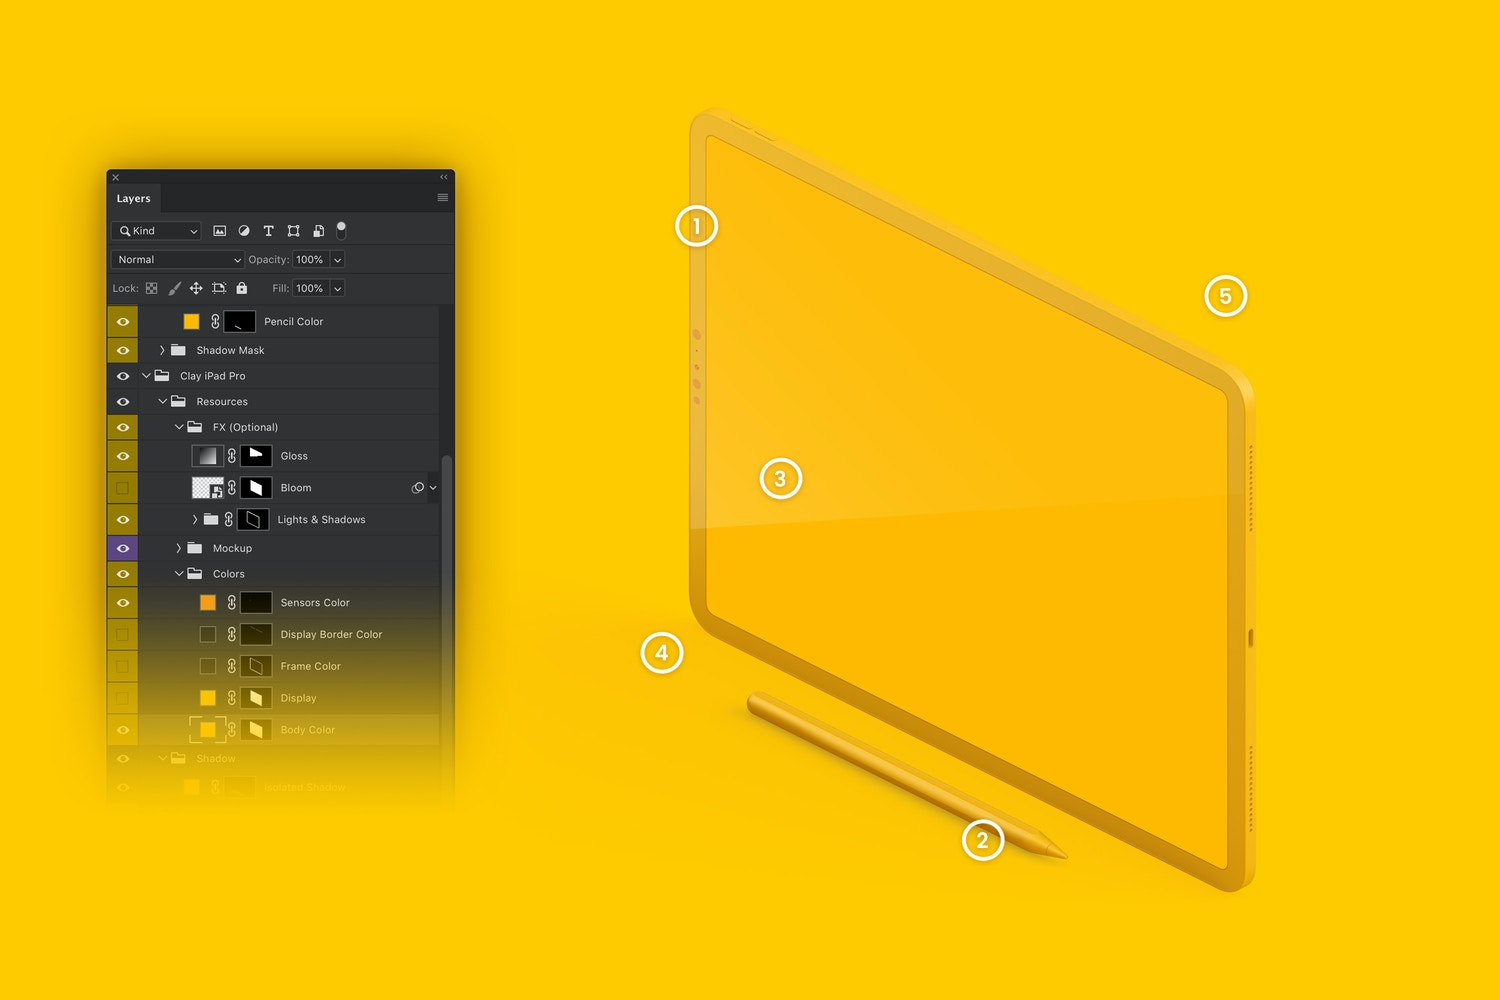 Fully customizable: (1) frame and sensors color, (2) color apple pencil, (3) optional glossy, (4) customizable shadows and (5) isolate background.